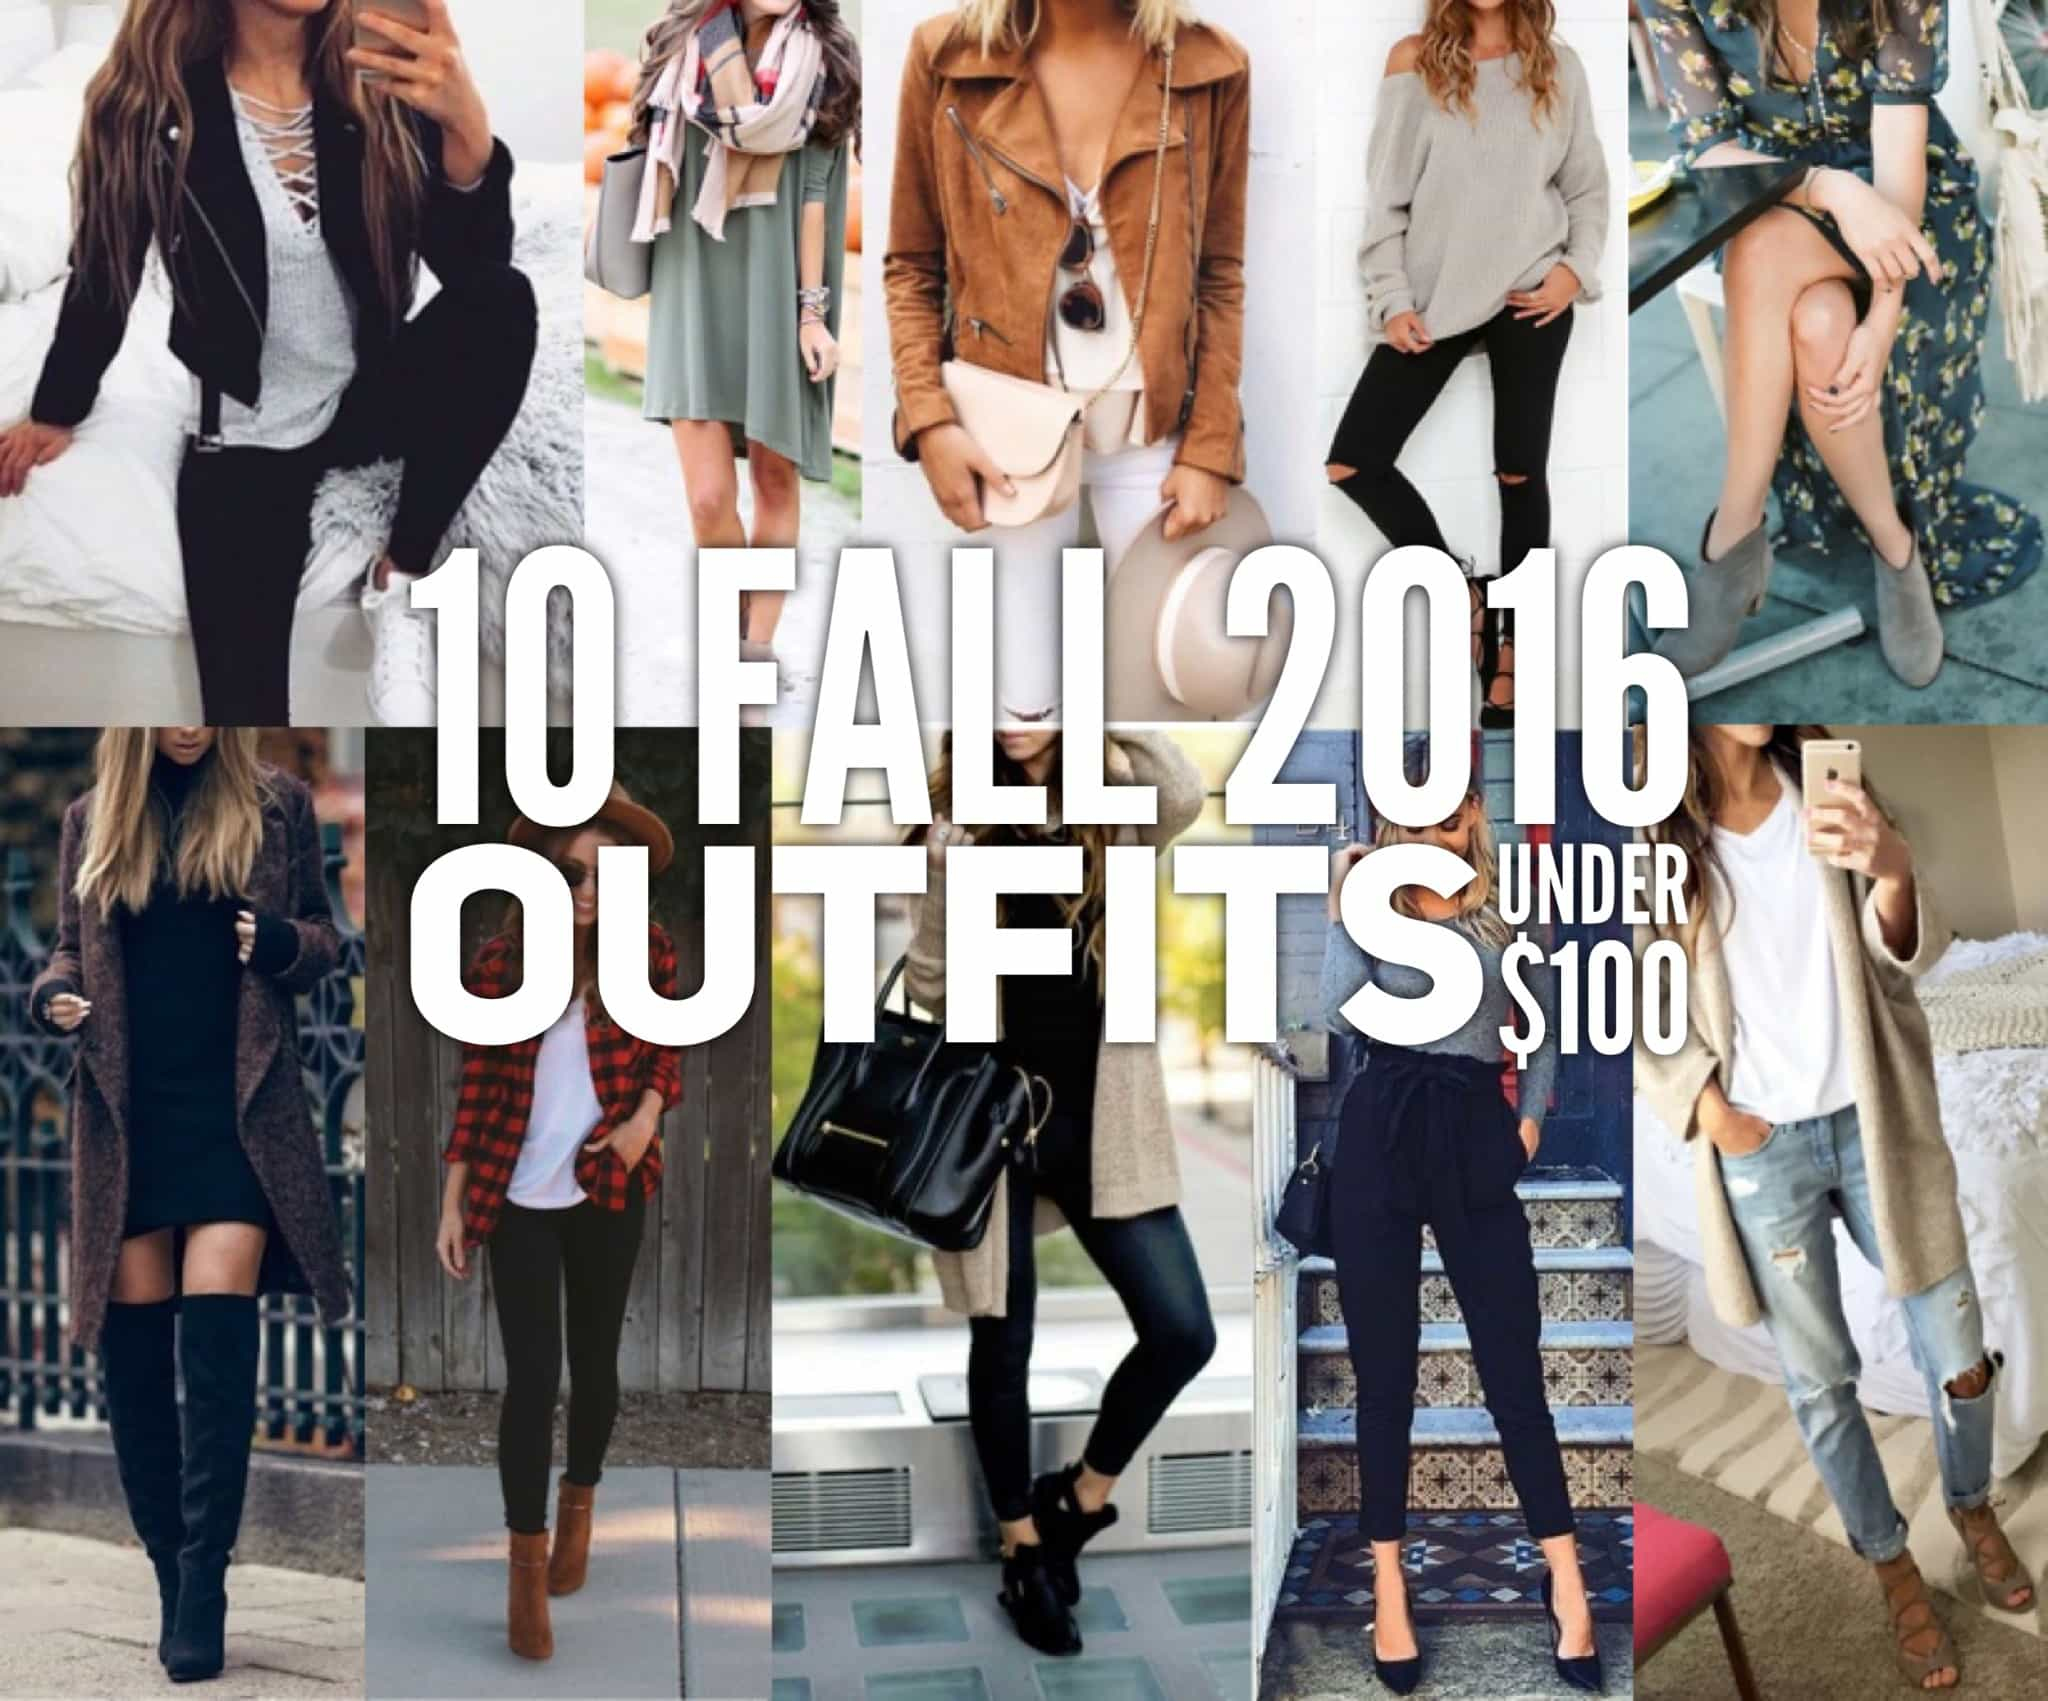 10 Fall 2016 Outfits Under $100